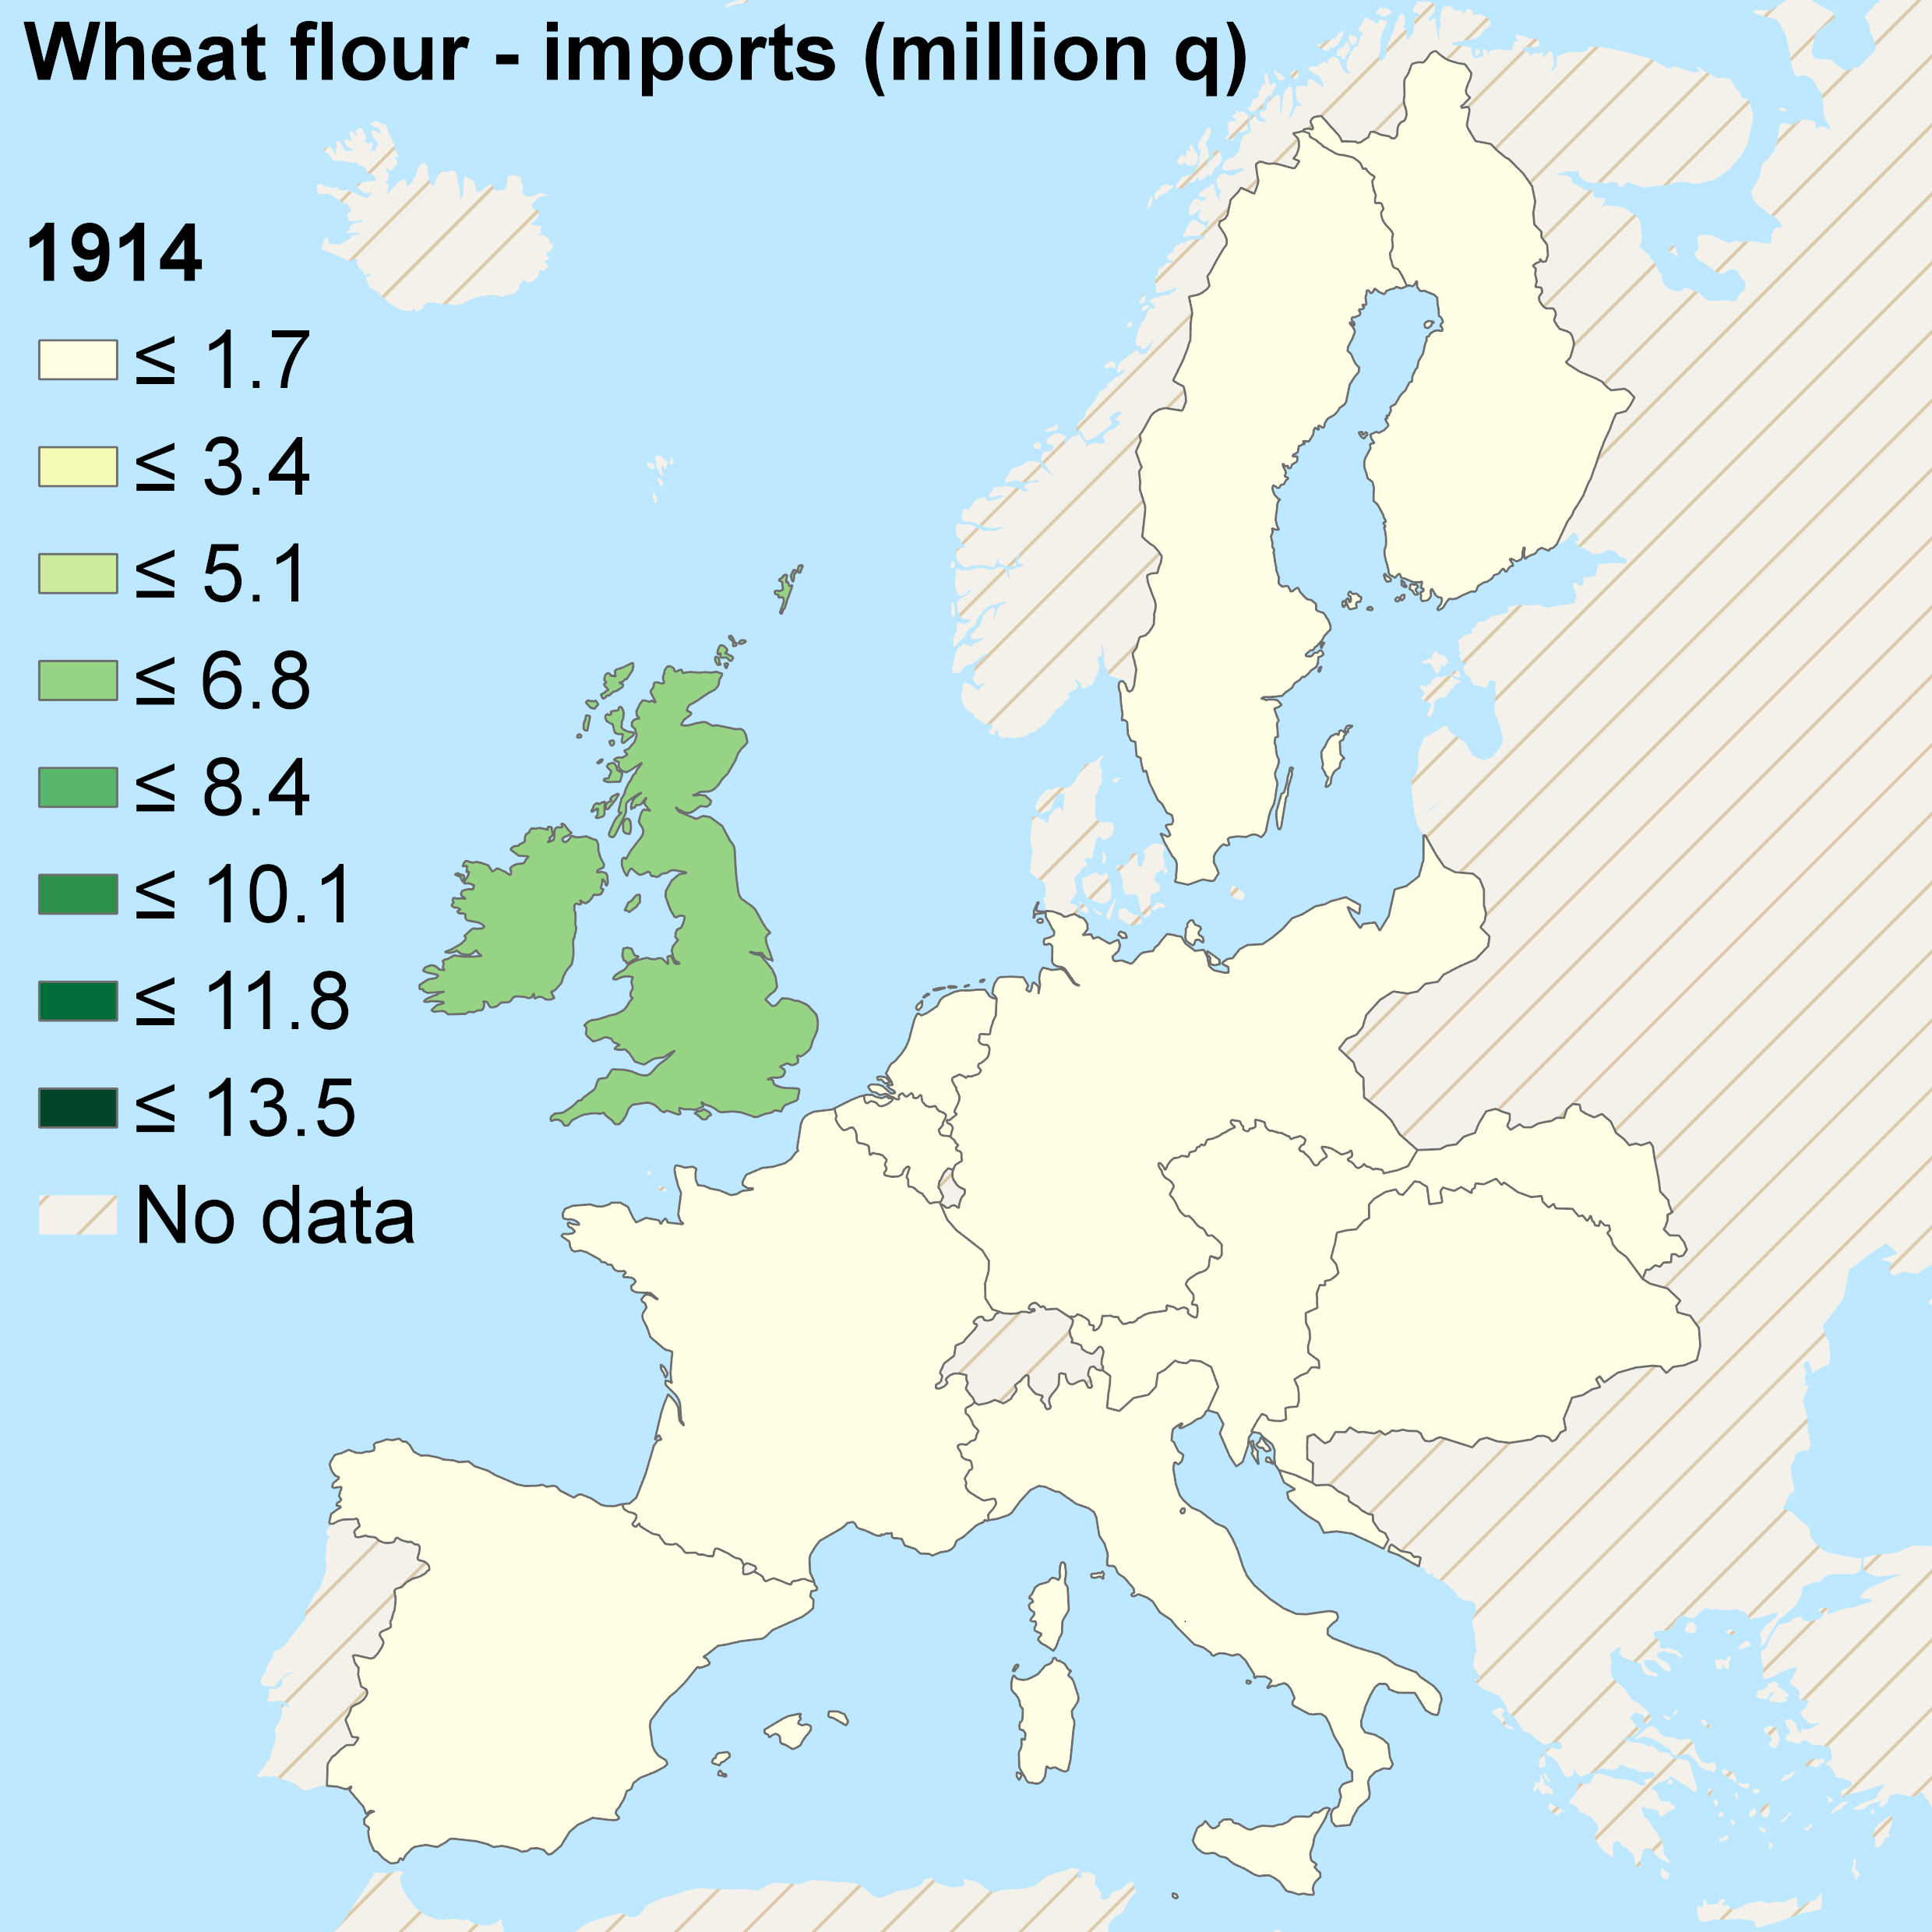 wheat-flour-imports-1914-v2